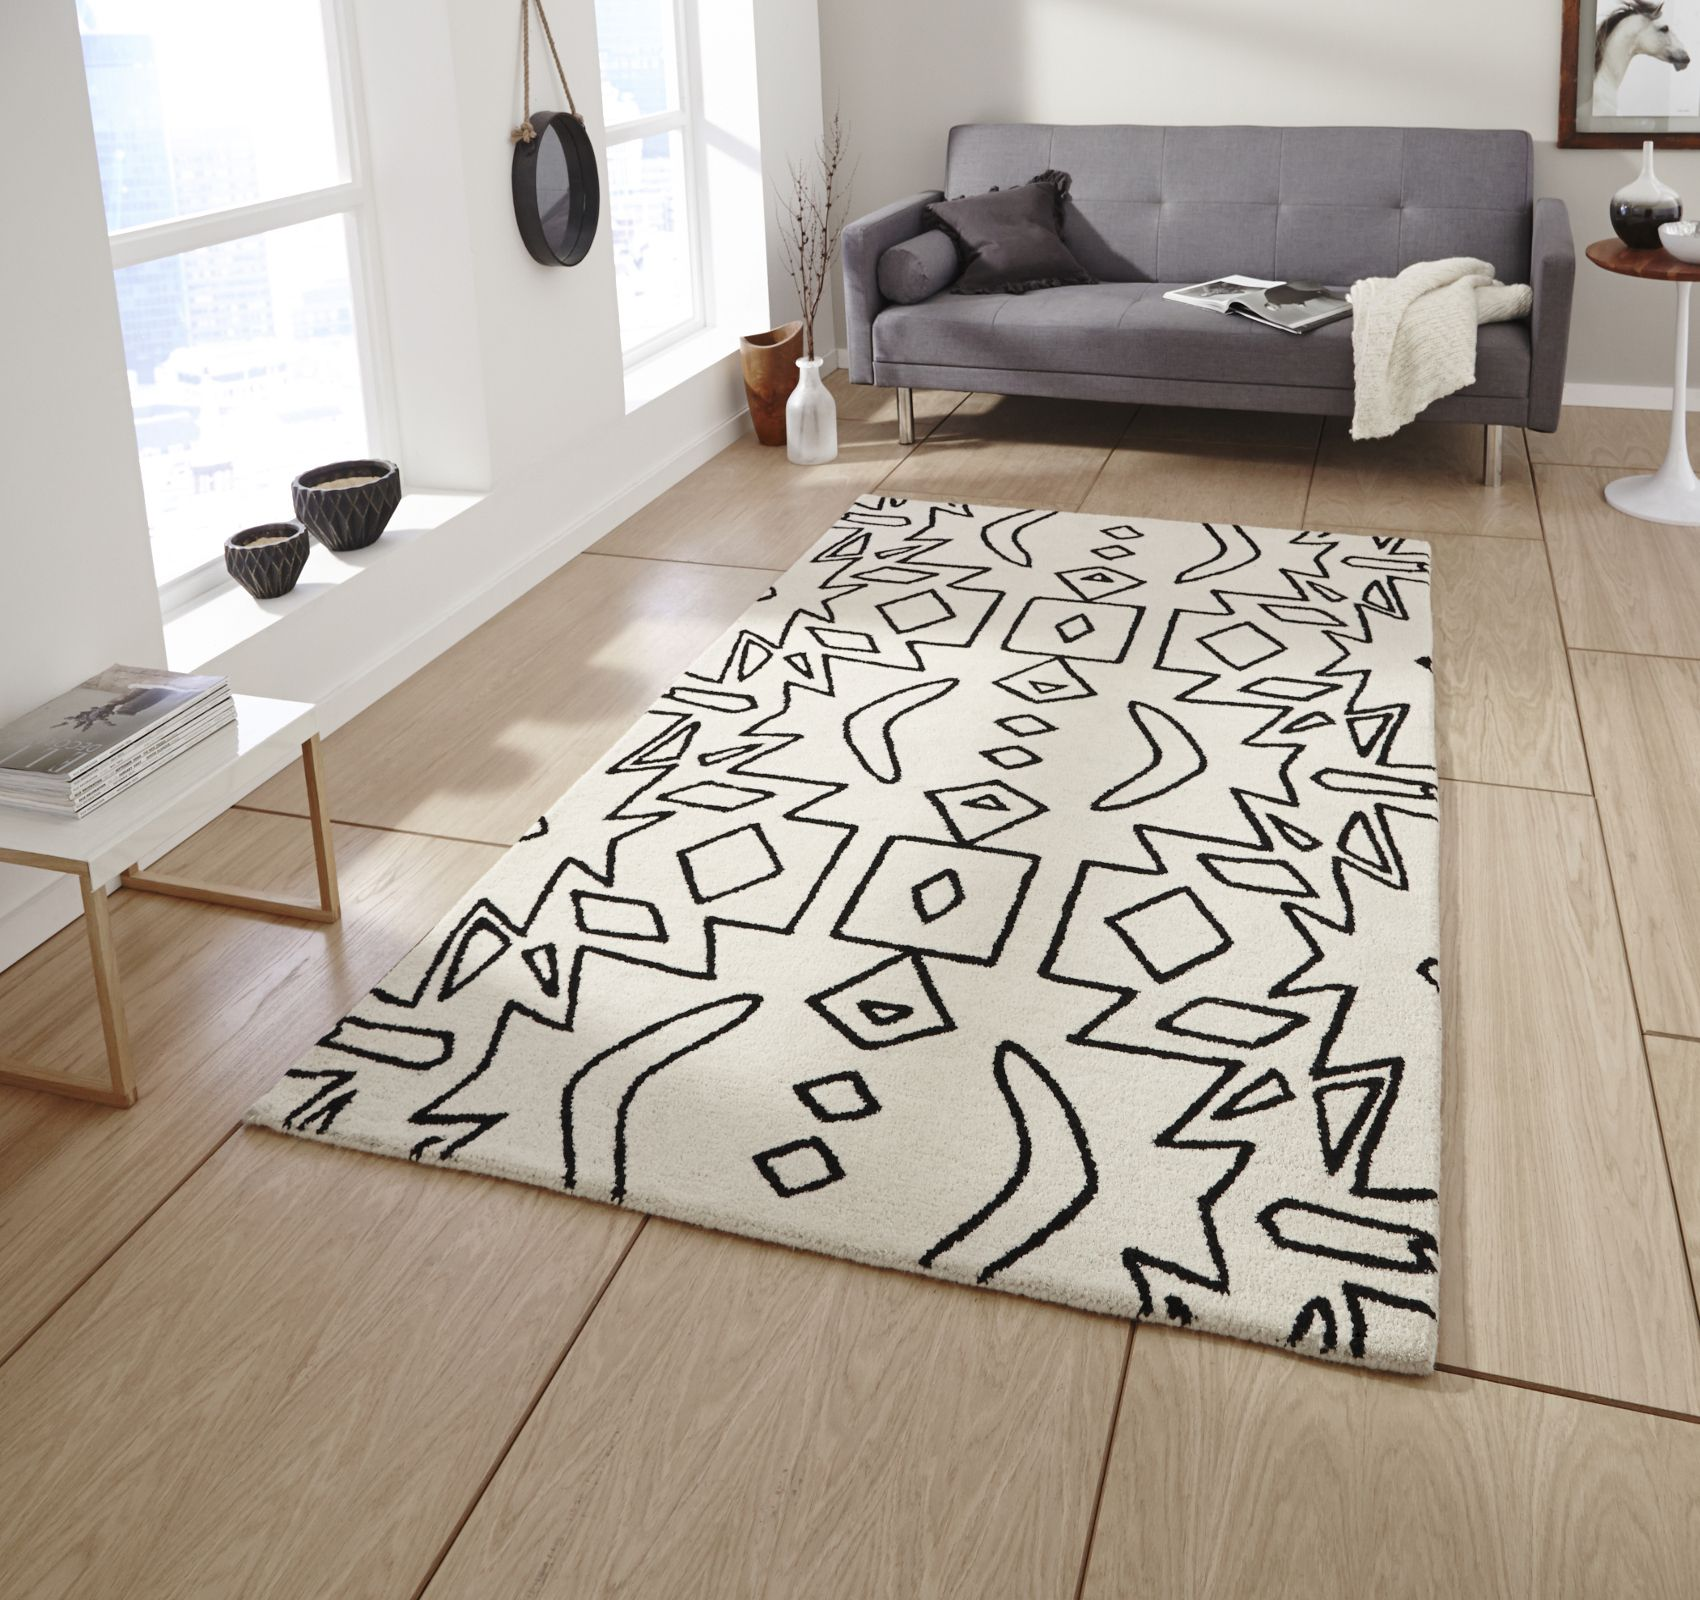 Black And White Rug - Gorgeous Whitebeige Rug With Black